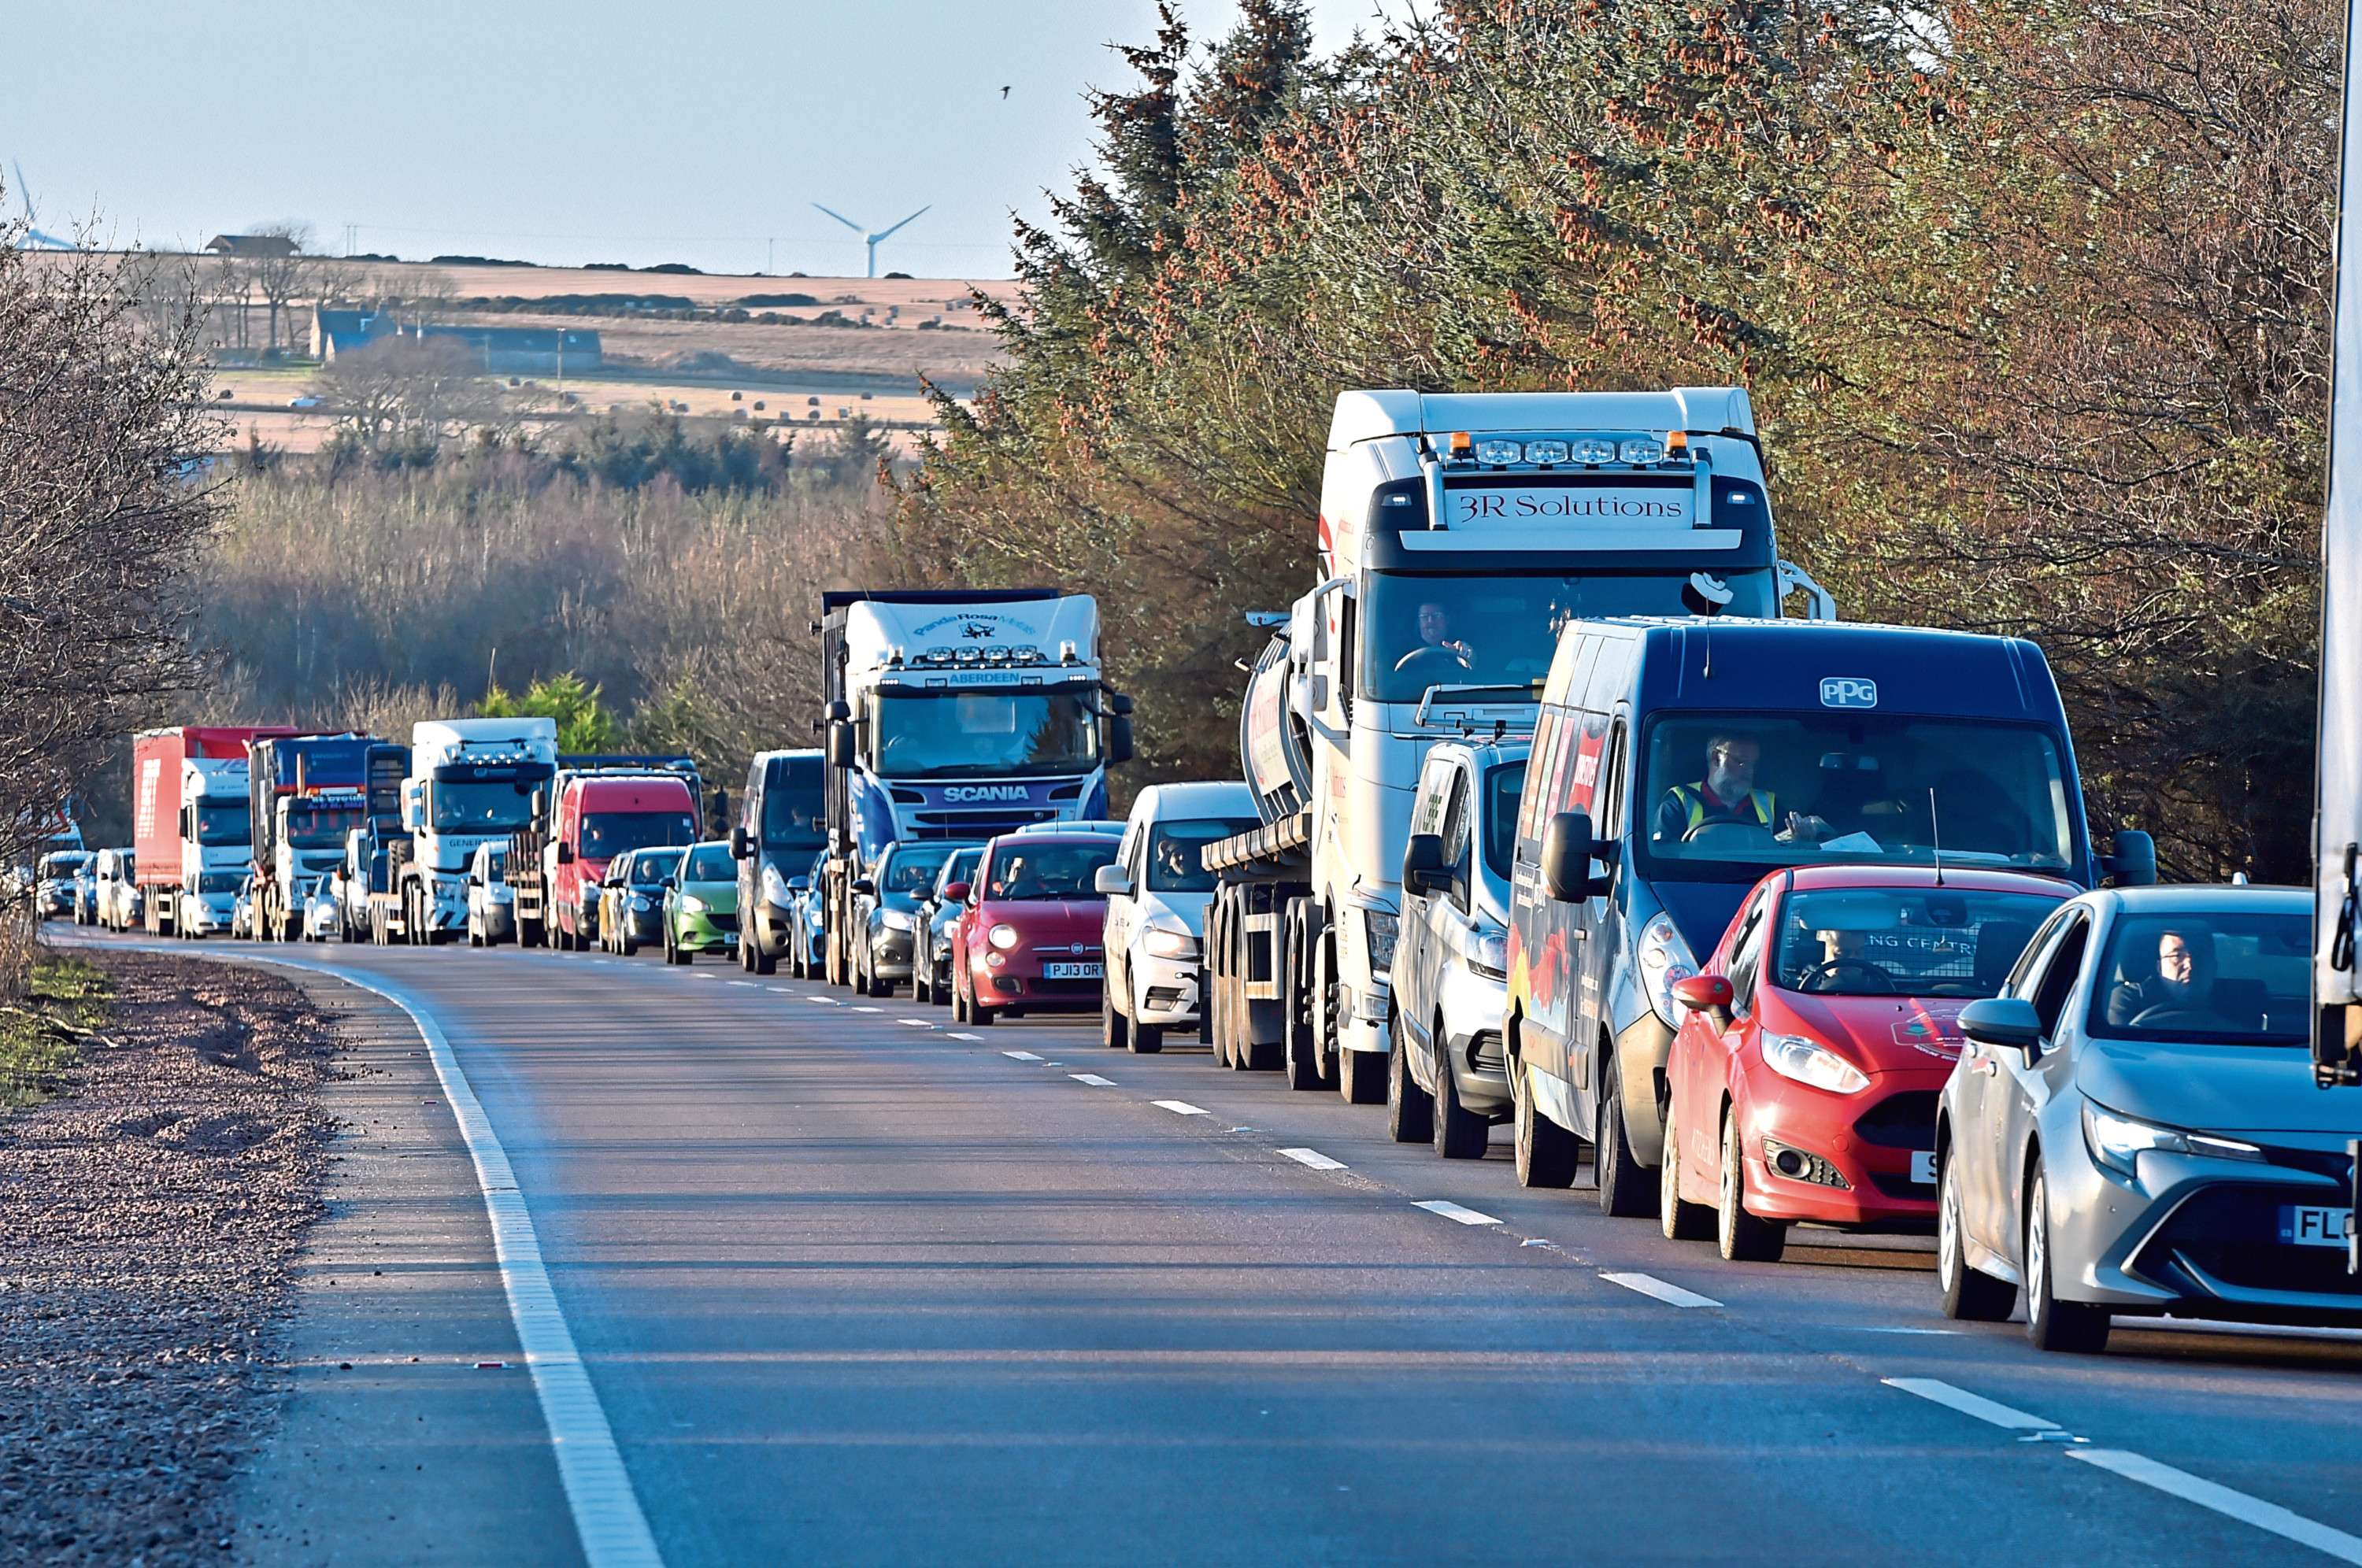 The roadworks have caused massive delays